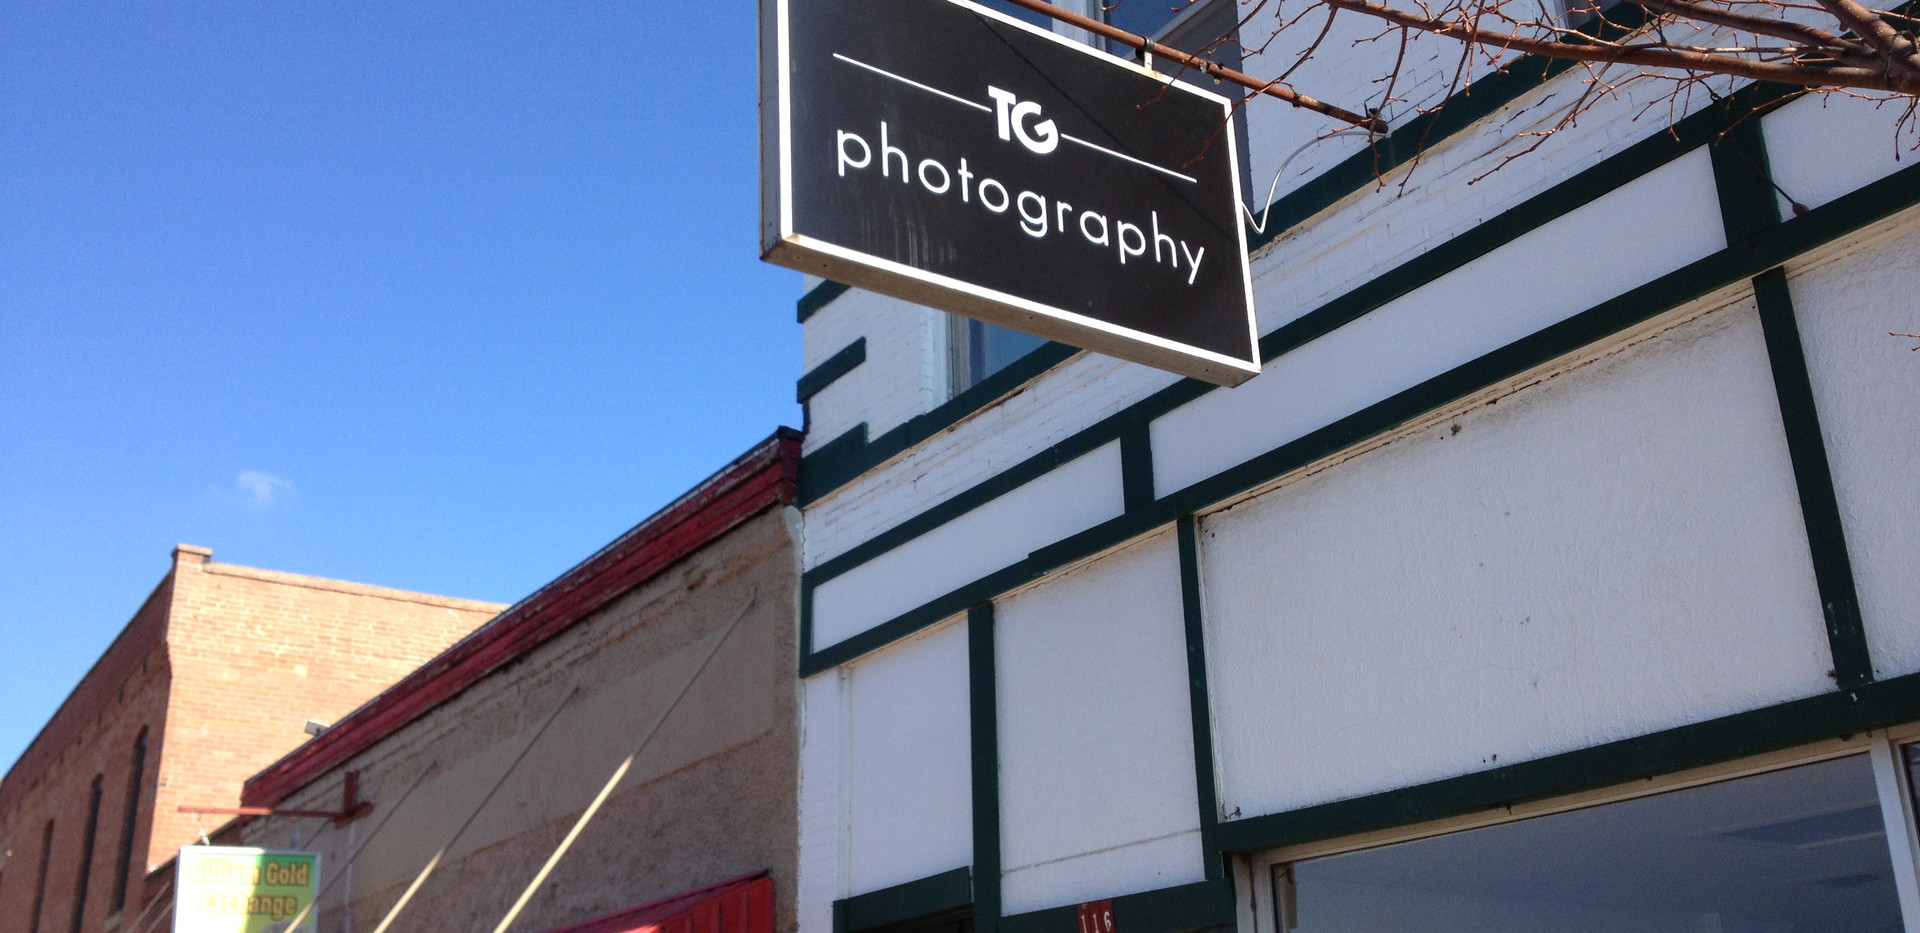 TG PHOTOGRAPHY SIGN